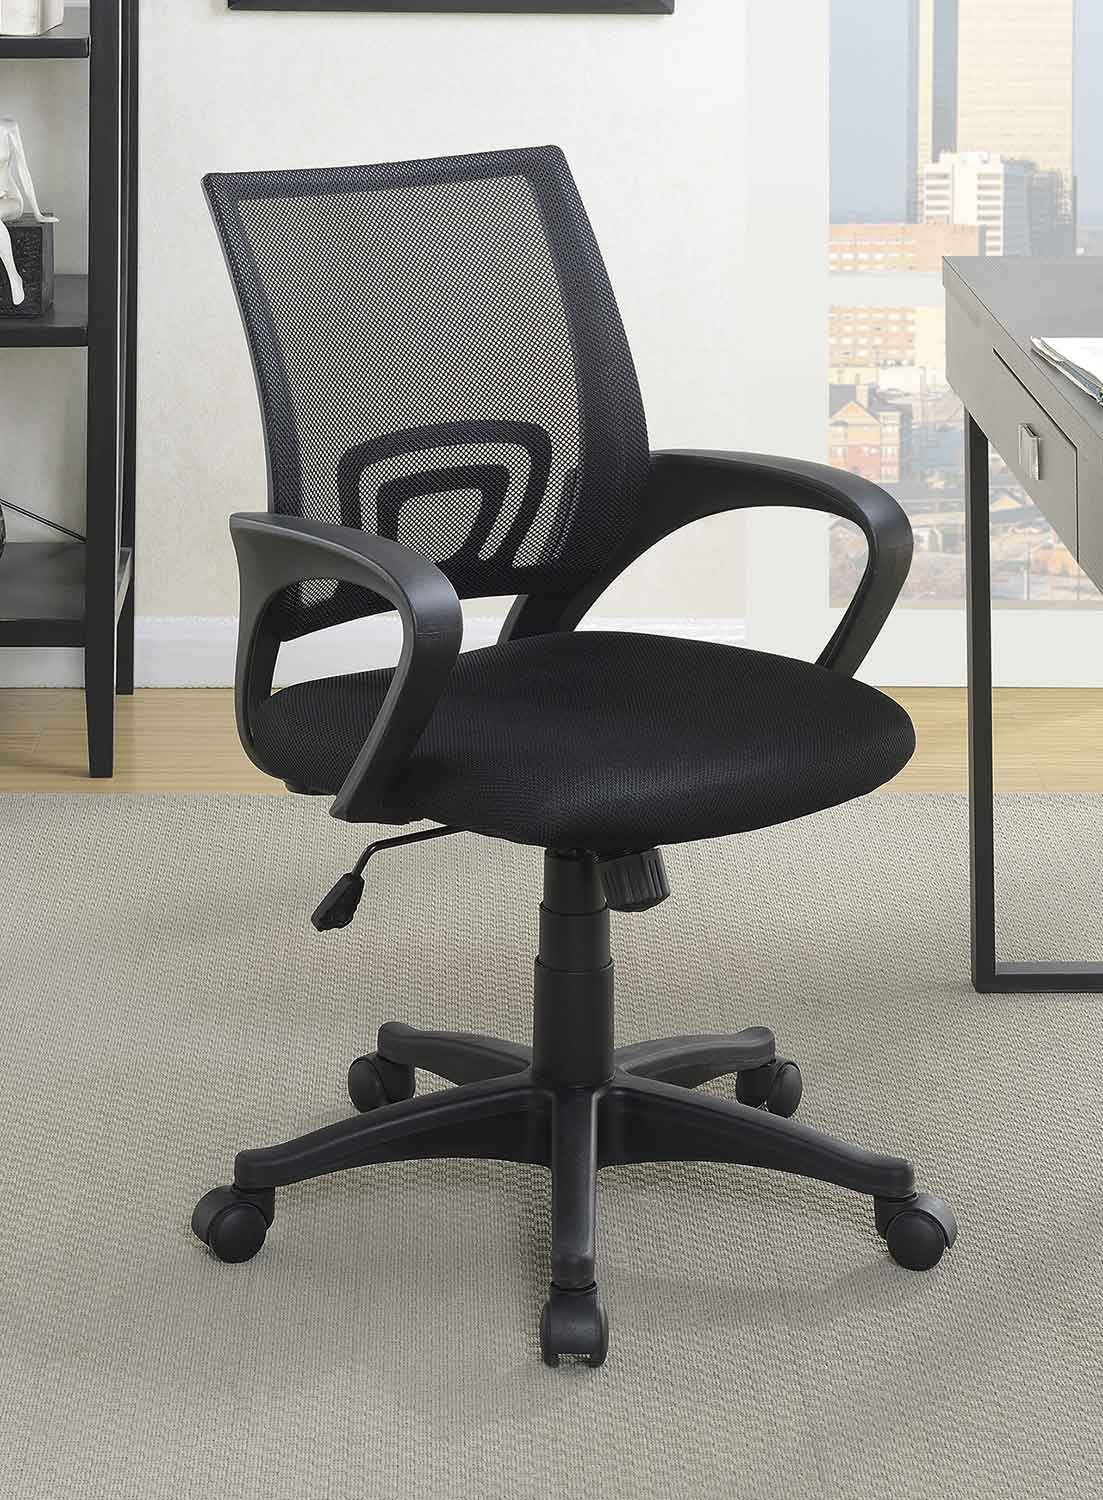 Coaster 881048 Office Chair - Black